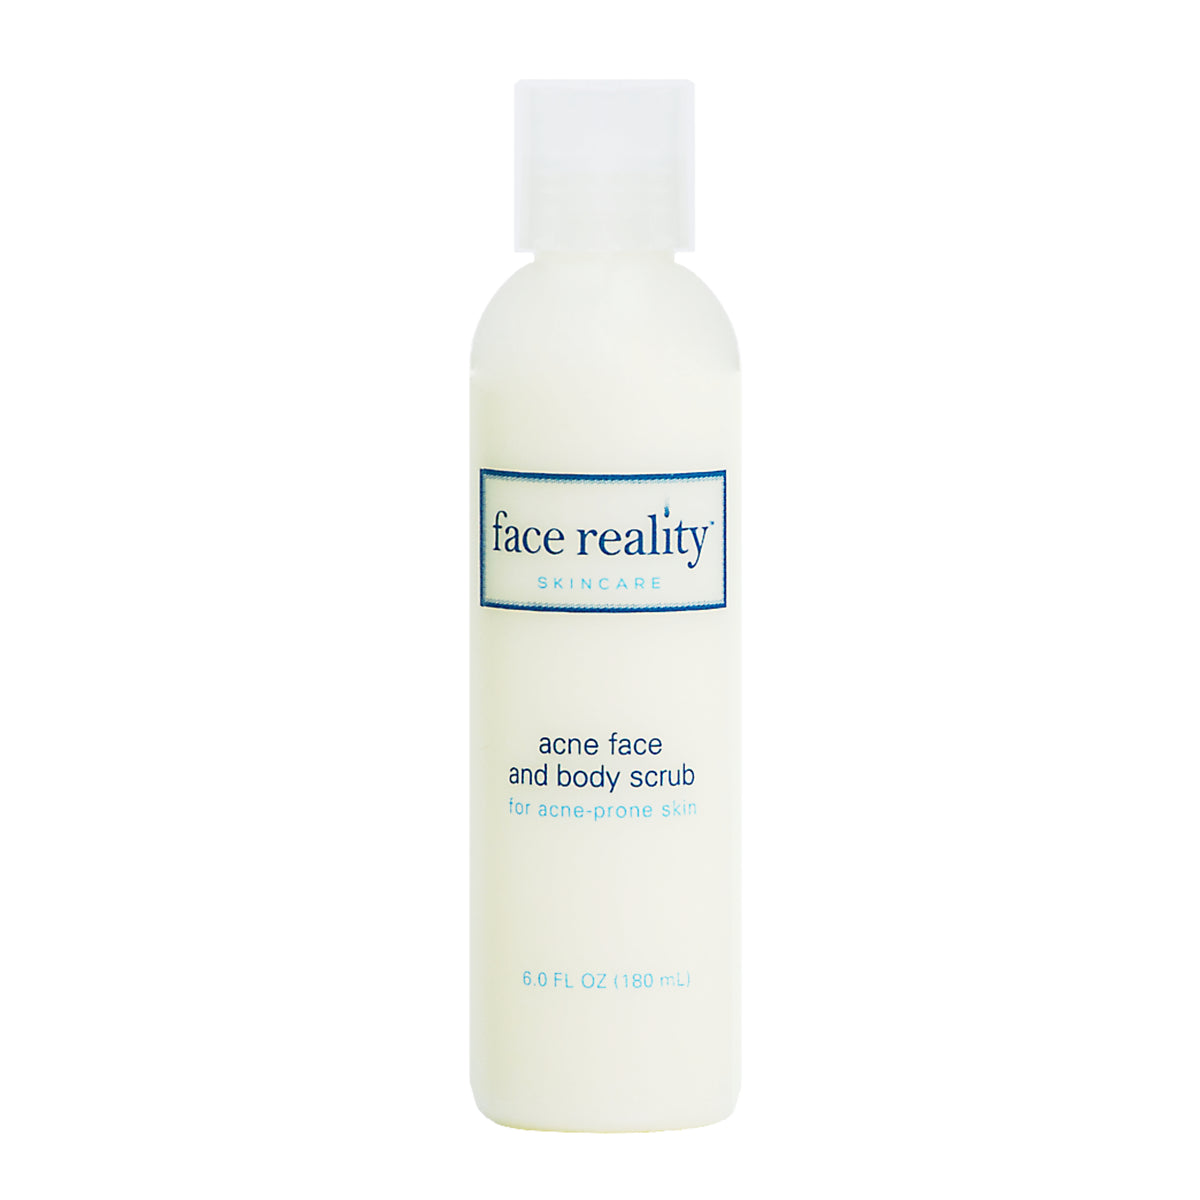 FACE REALITY - Acne Face and Body Scrub - Beauty Nook